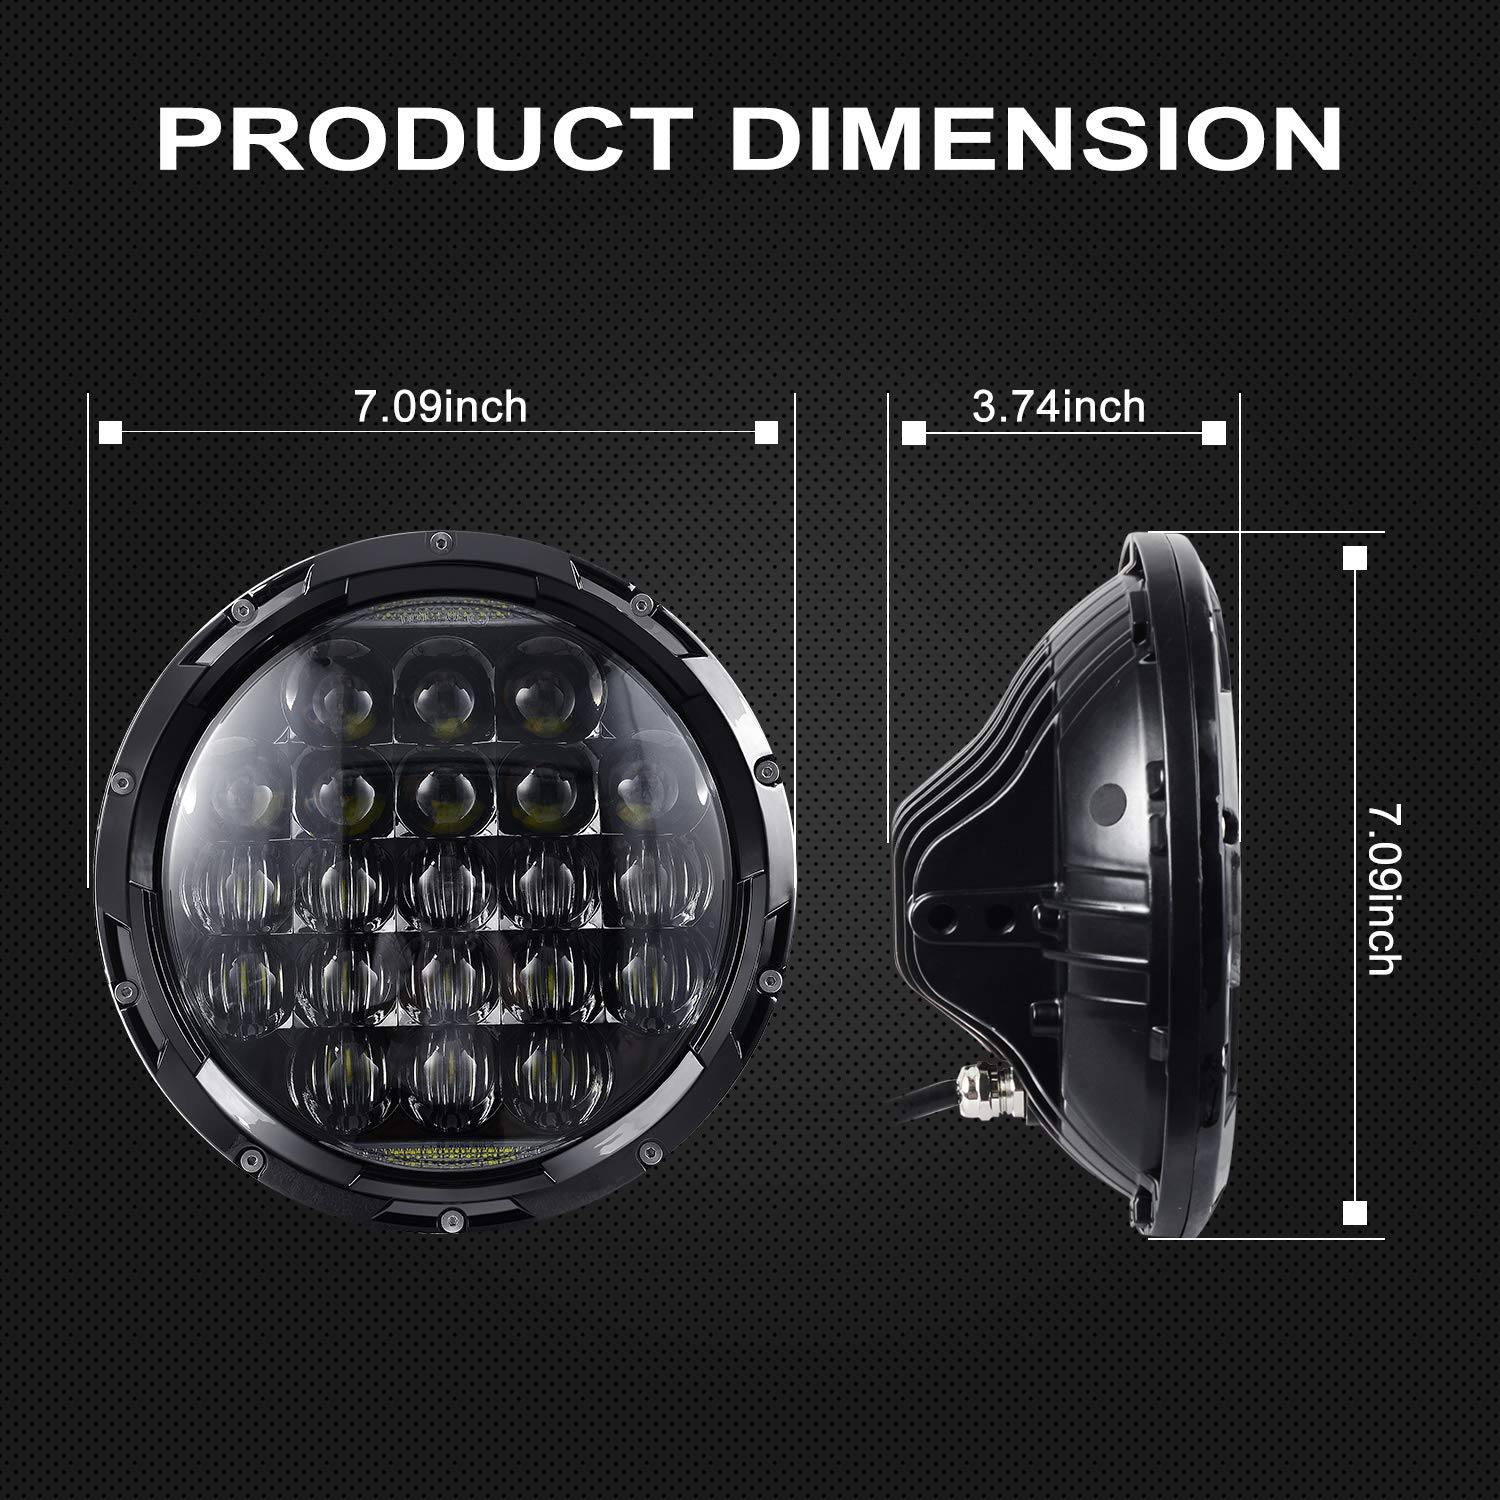 7 Inch 105W LED Projector Headlight Round 5D Lens with DRL for Jeep Wrangler JK TJ LJ CJ Motorcycle AAIWA LED Headlight for Jeep Wrangler